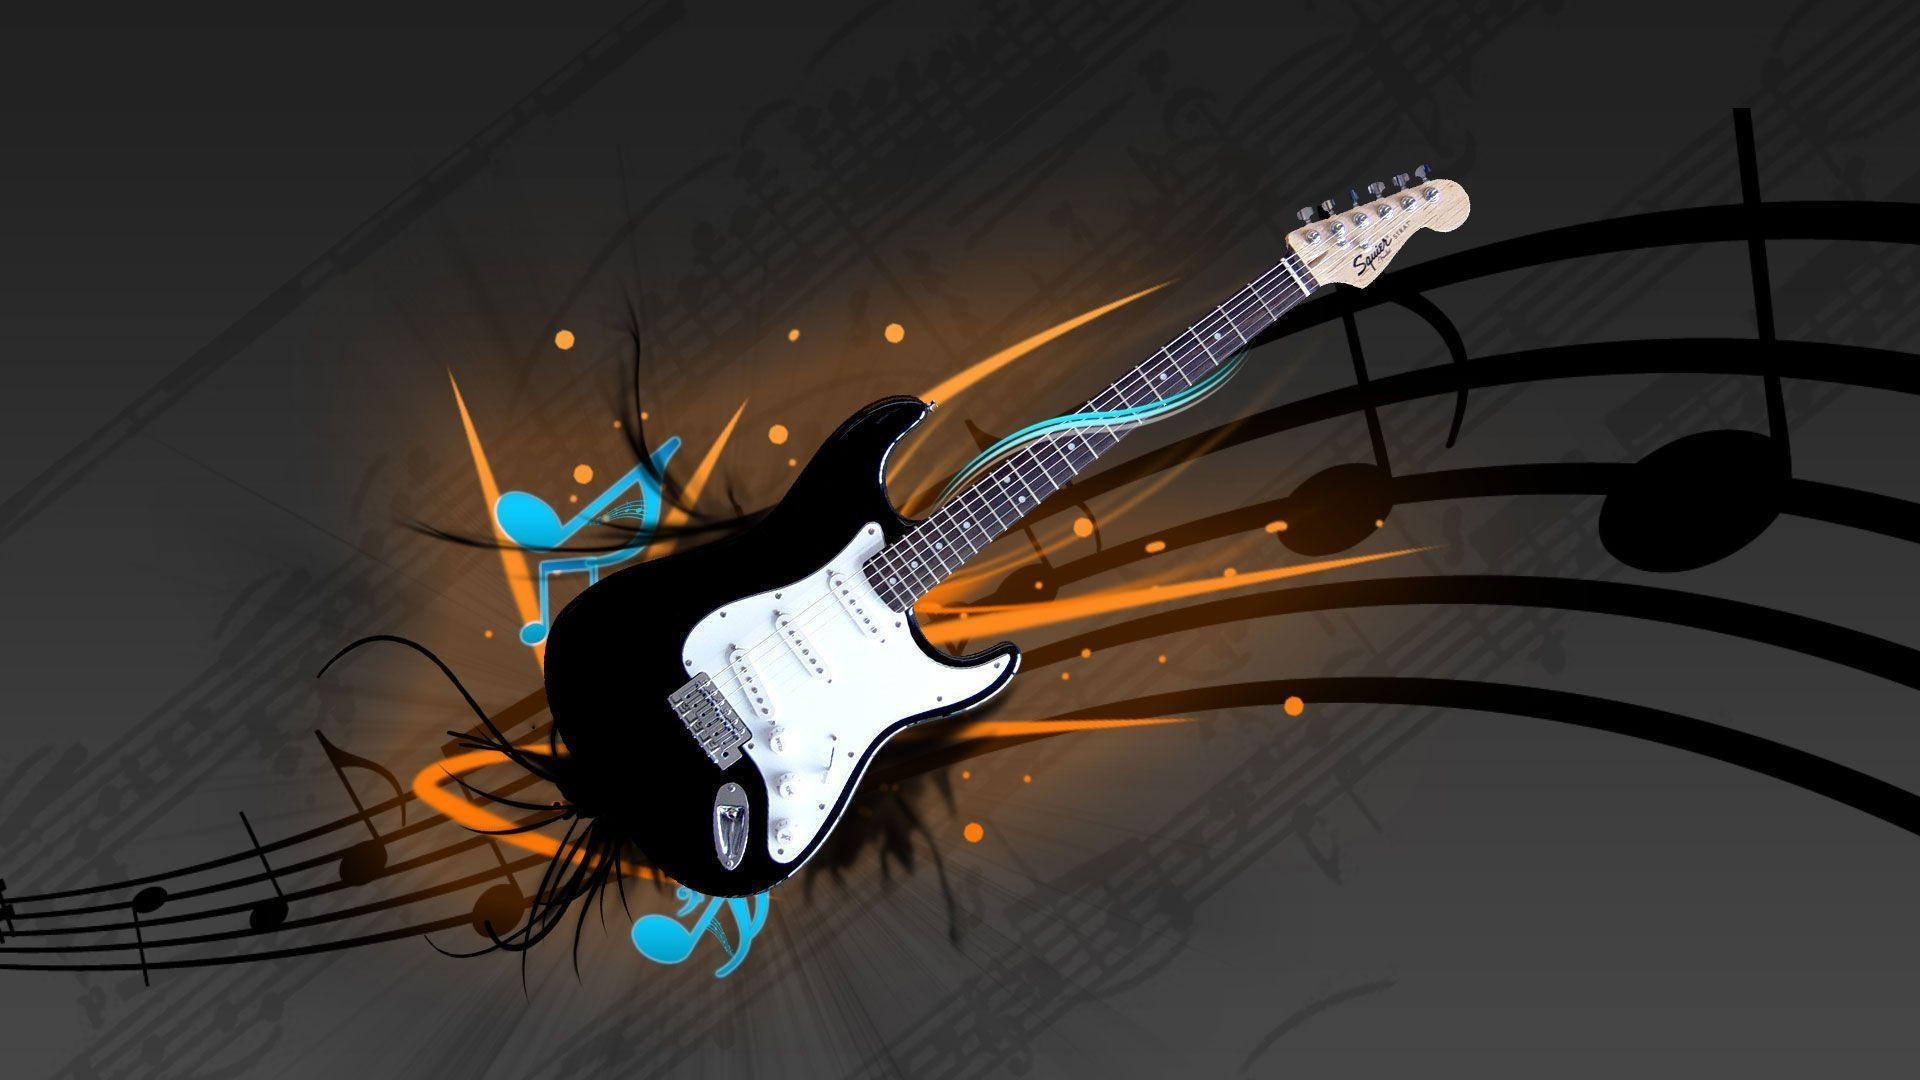 3d wallpaper hd guitar - WallpapersAK